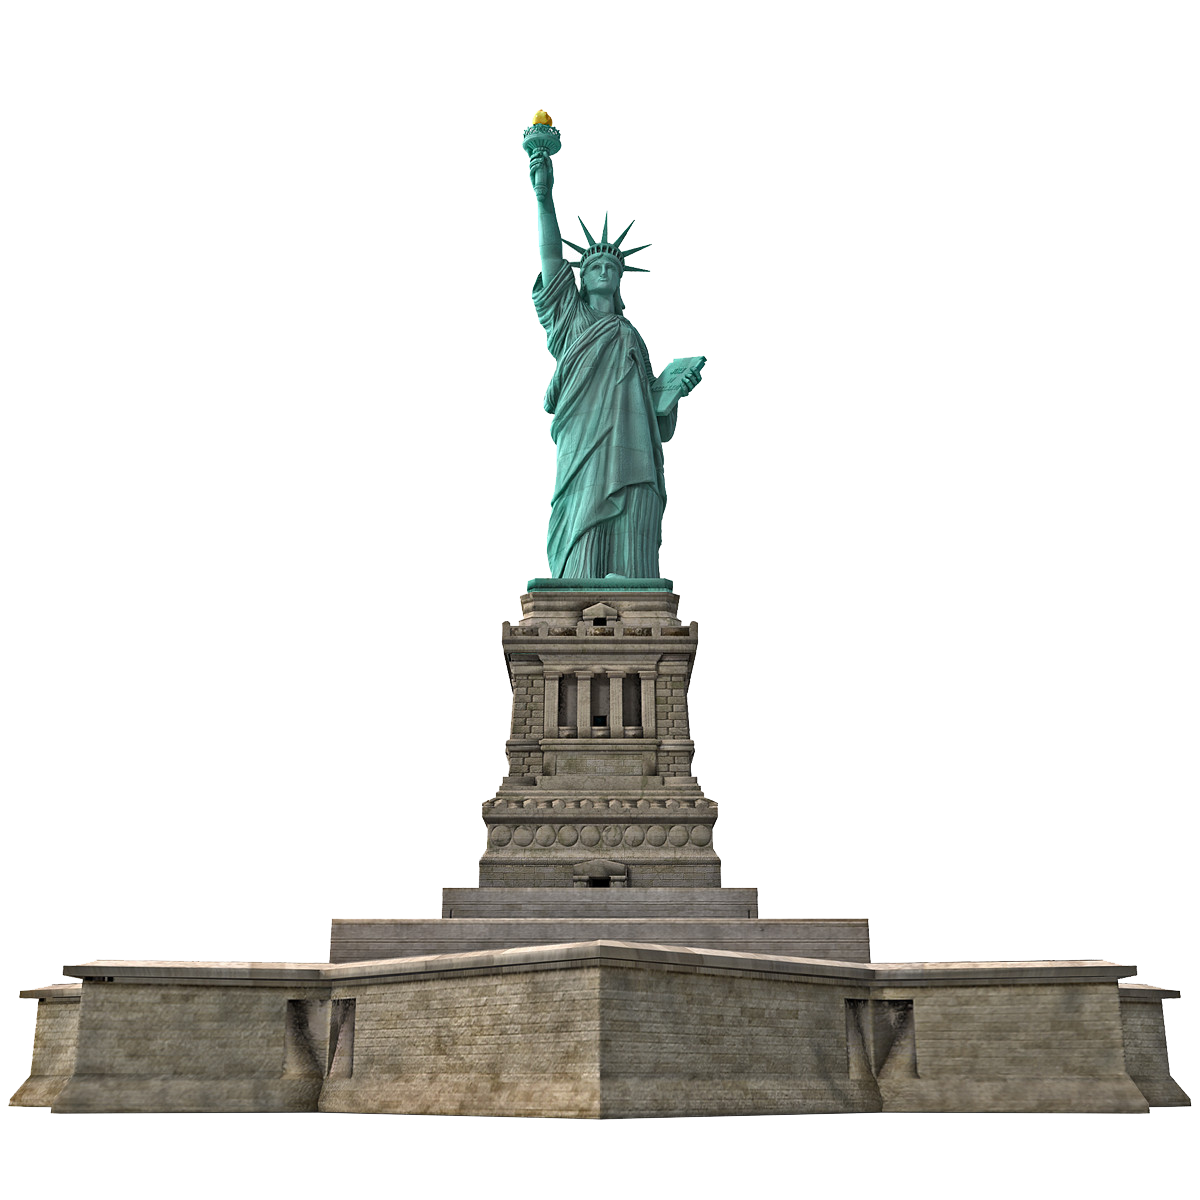 Statue Of Liberty Photos PNG Image